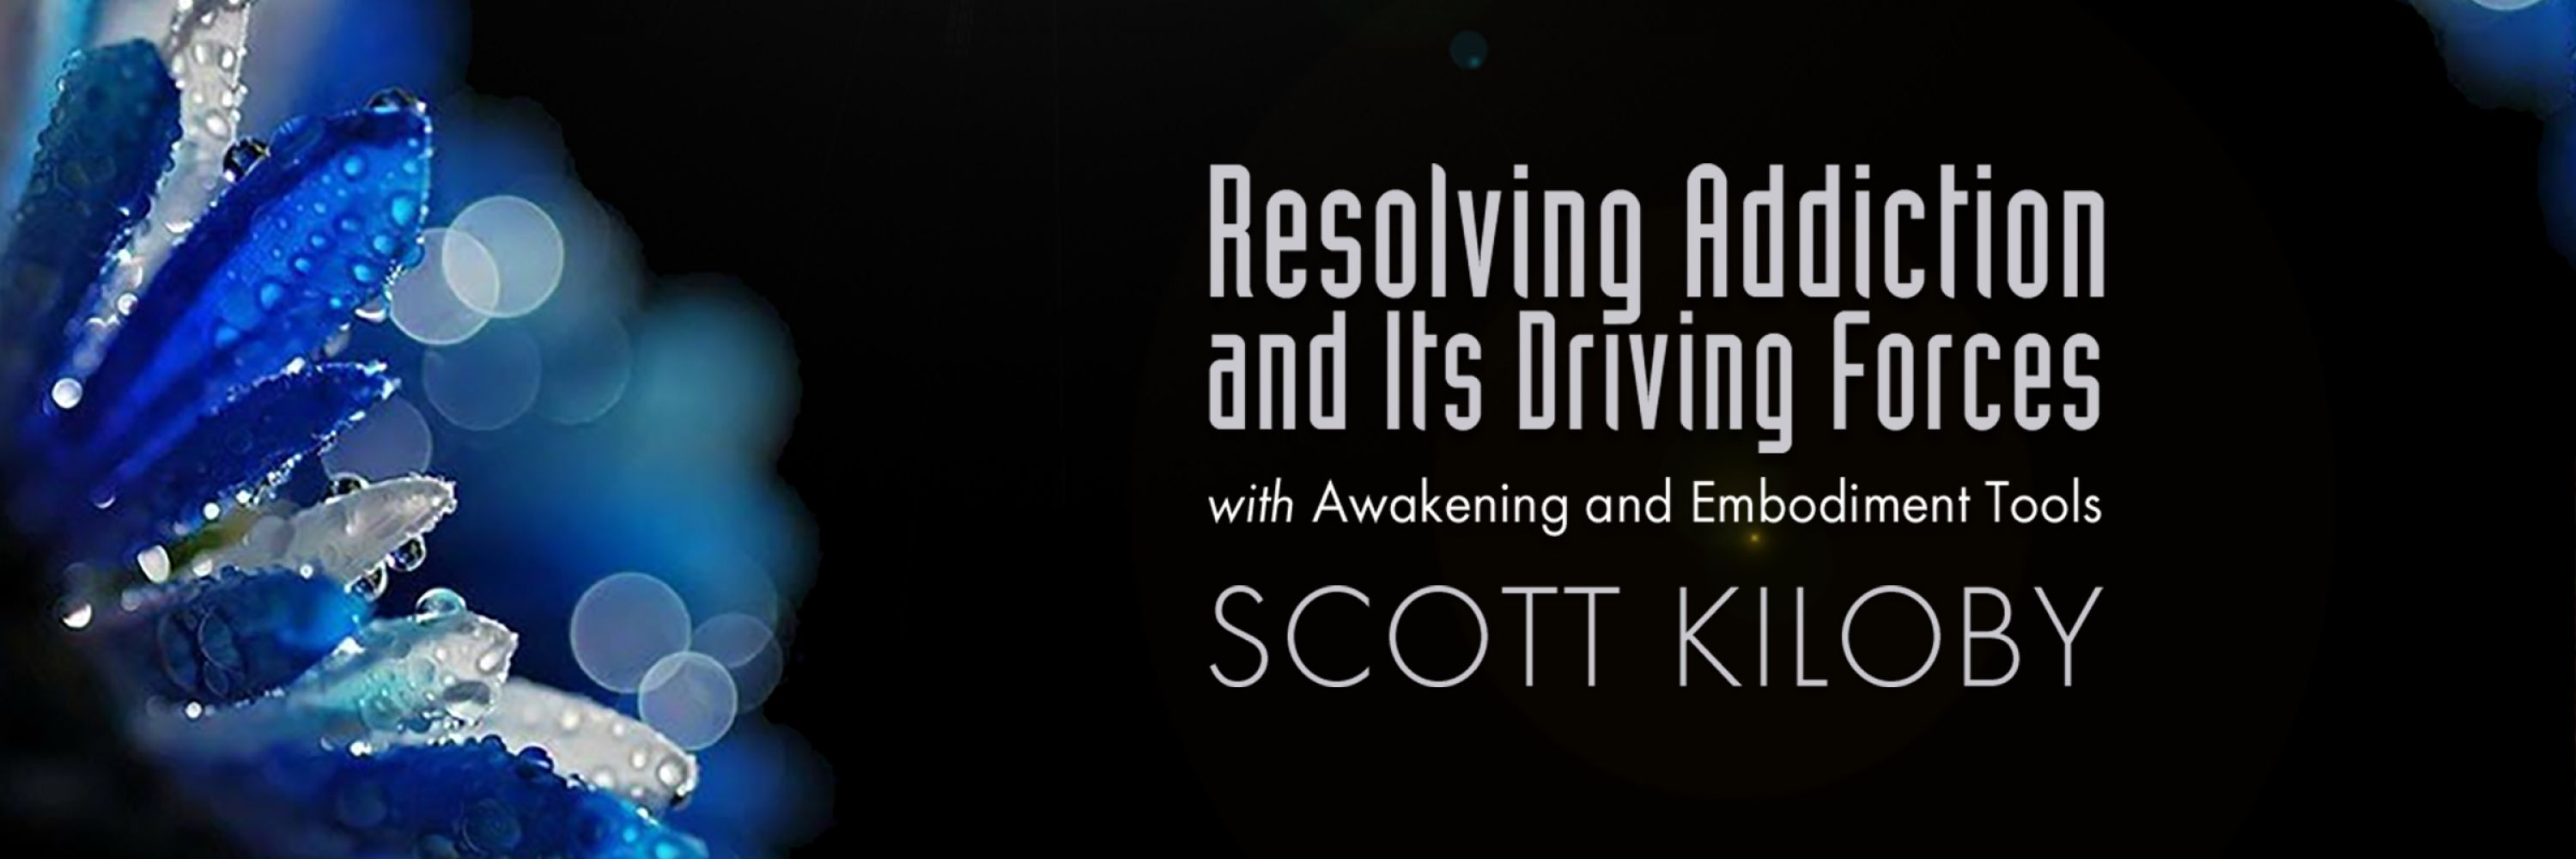 Resolving Addiction and Its Driving Forces